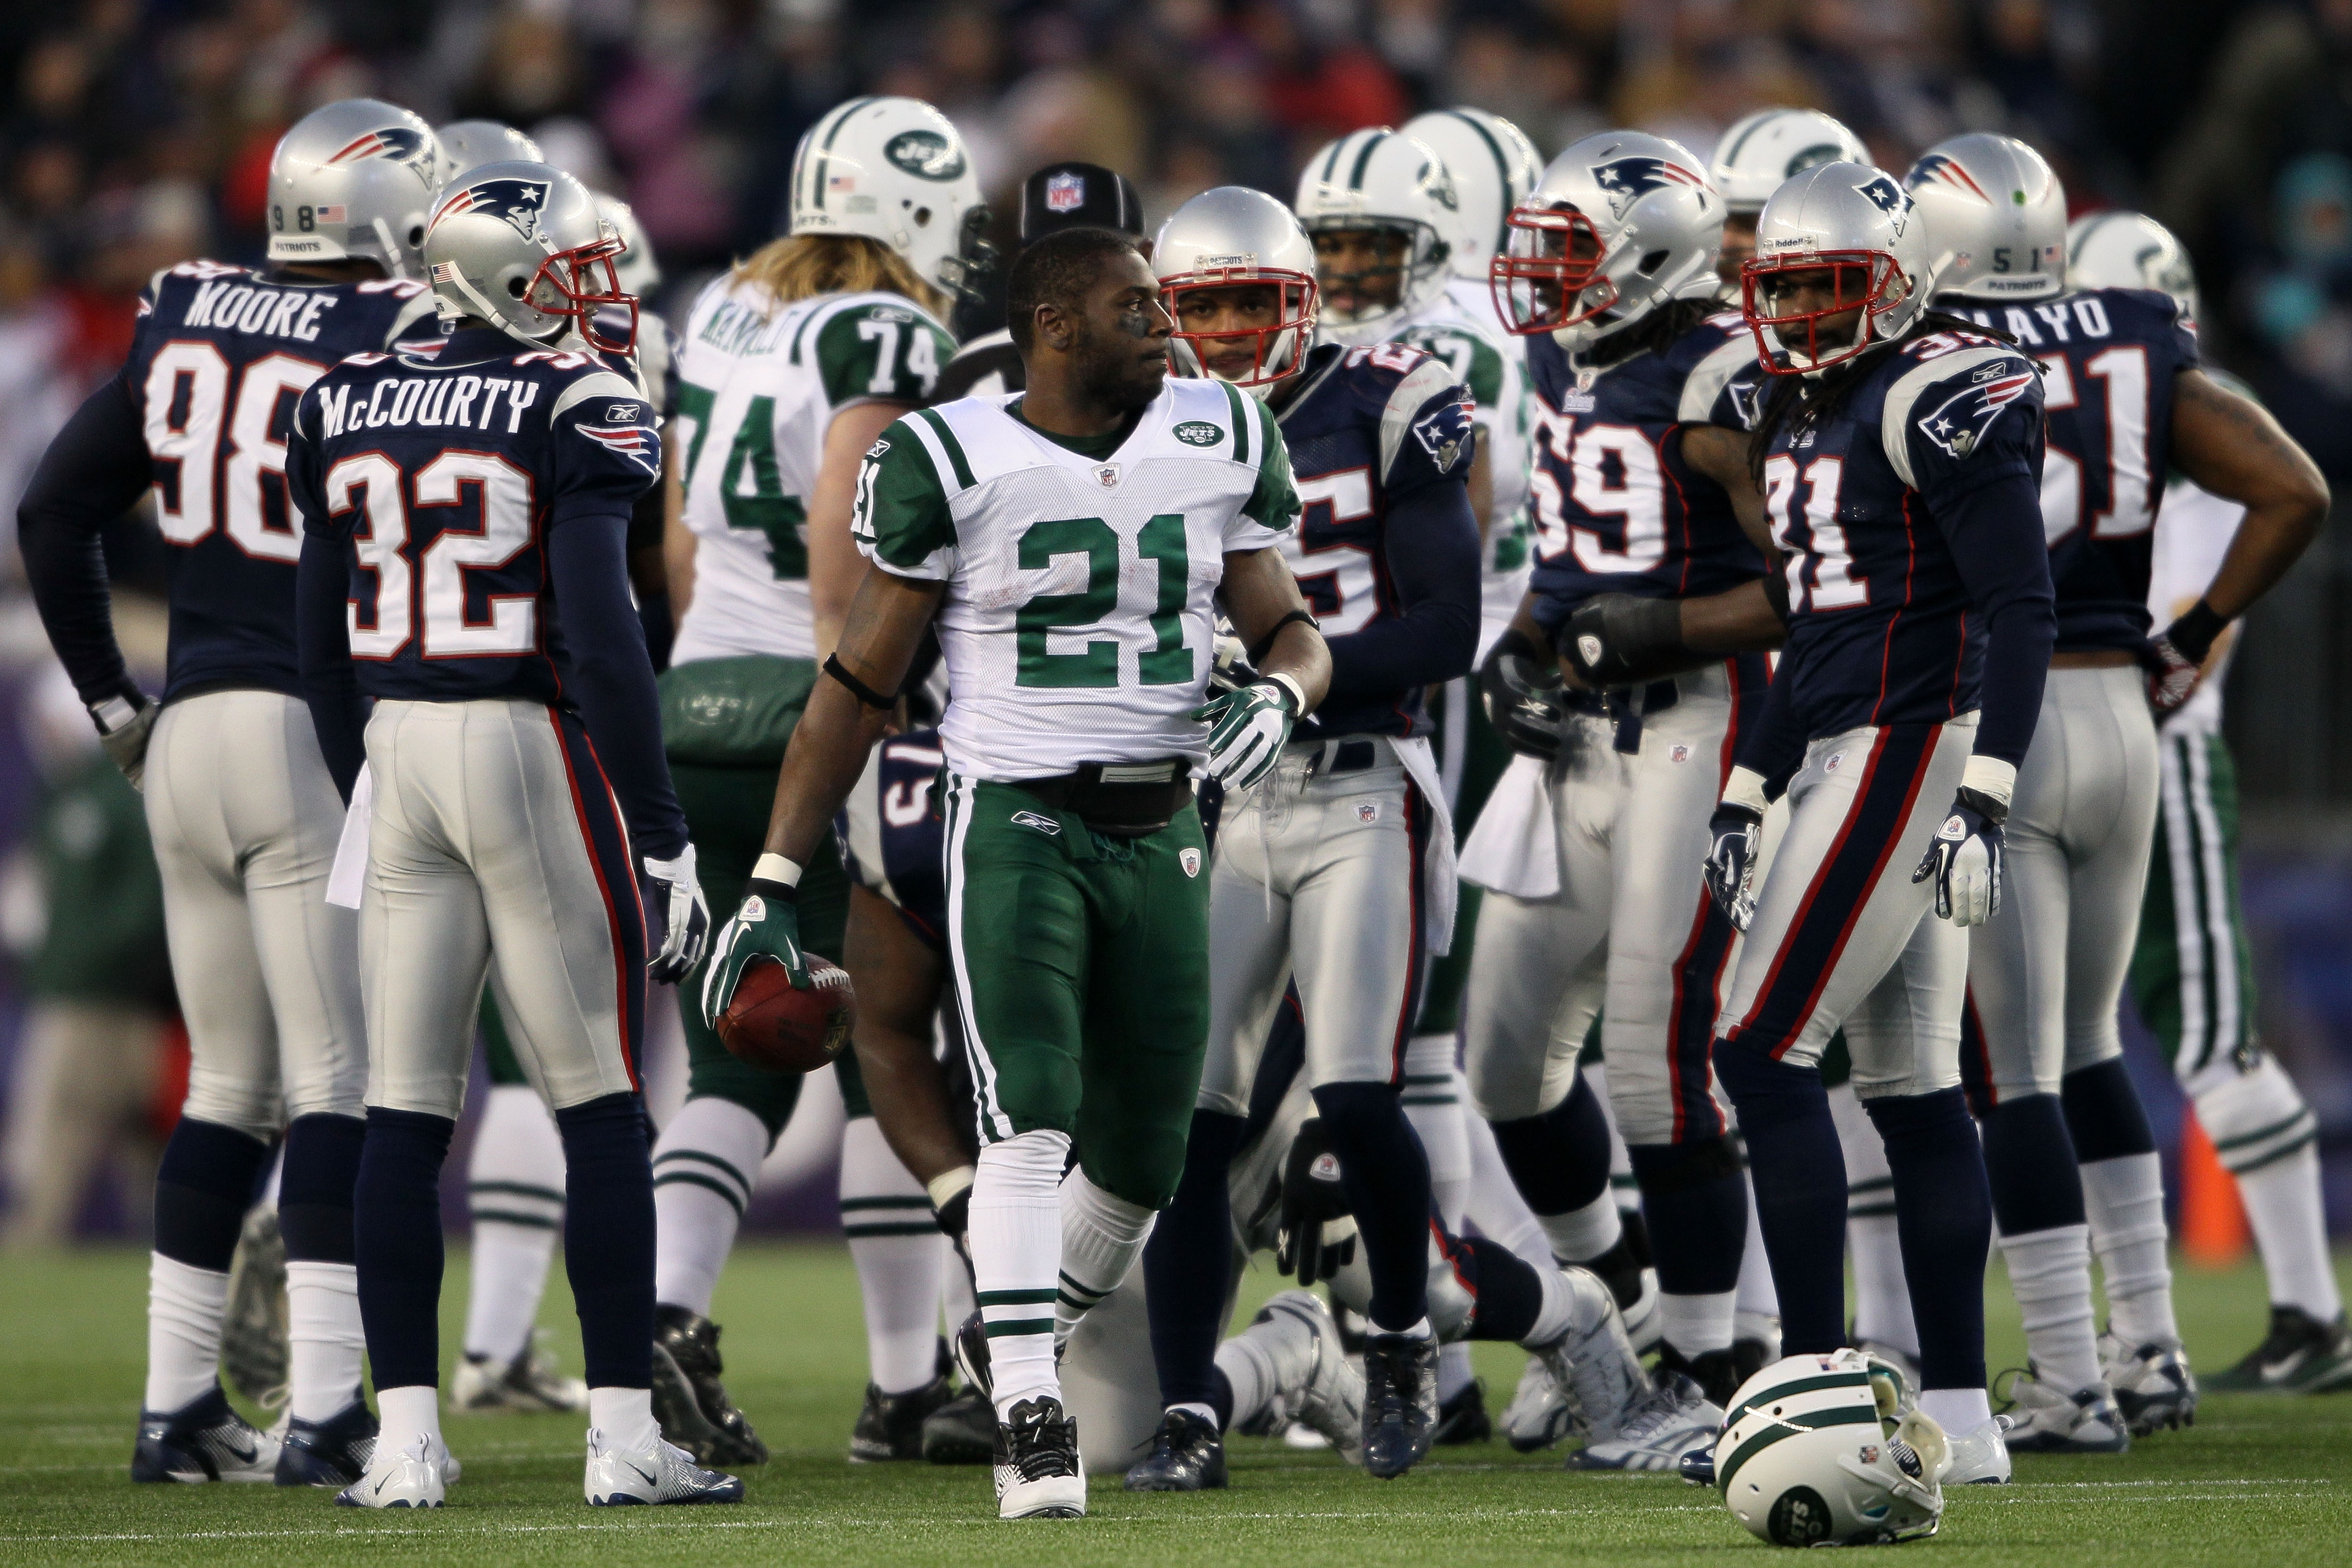 FOXBORO, MA - JANUARY 16:  Running back LaDainian Tomlinson #21 of the New York Jets walks with the ball after a play against the New England Patriots during their 2011 AFC divisional playoff game at Gillette Stadium on January 16, 2011 in Foxboro, Massac